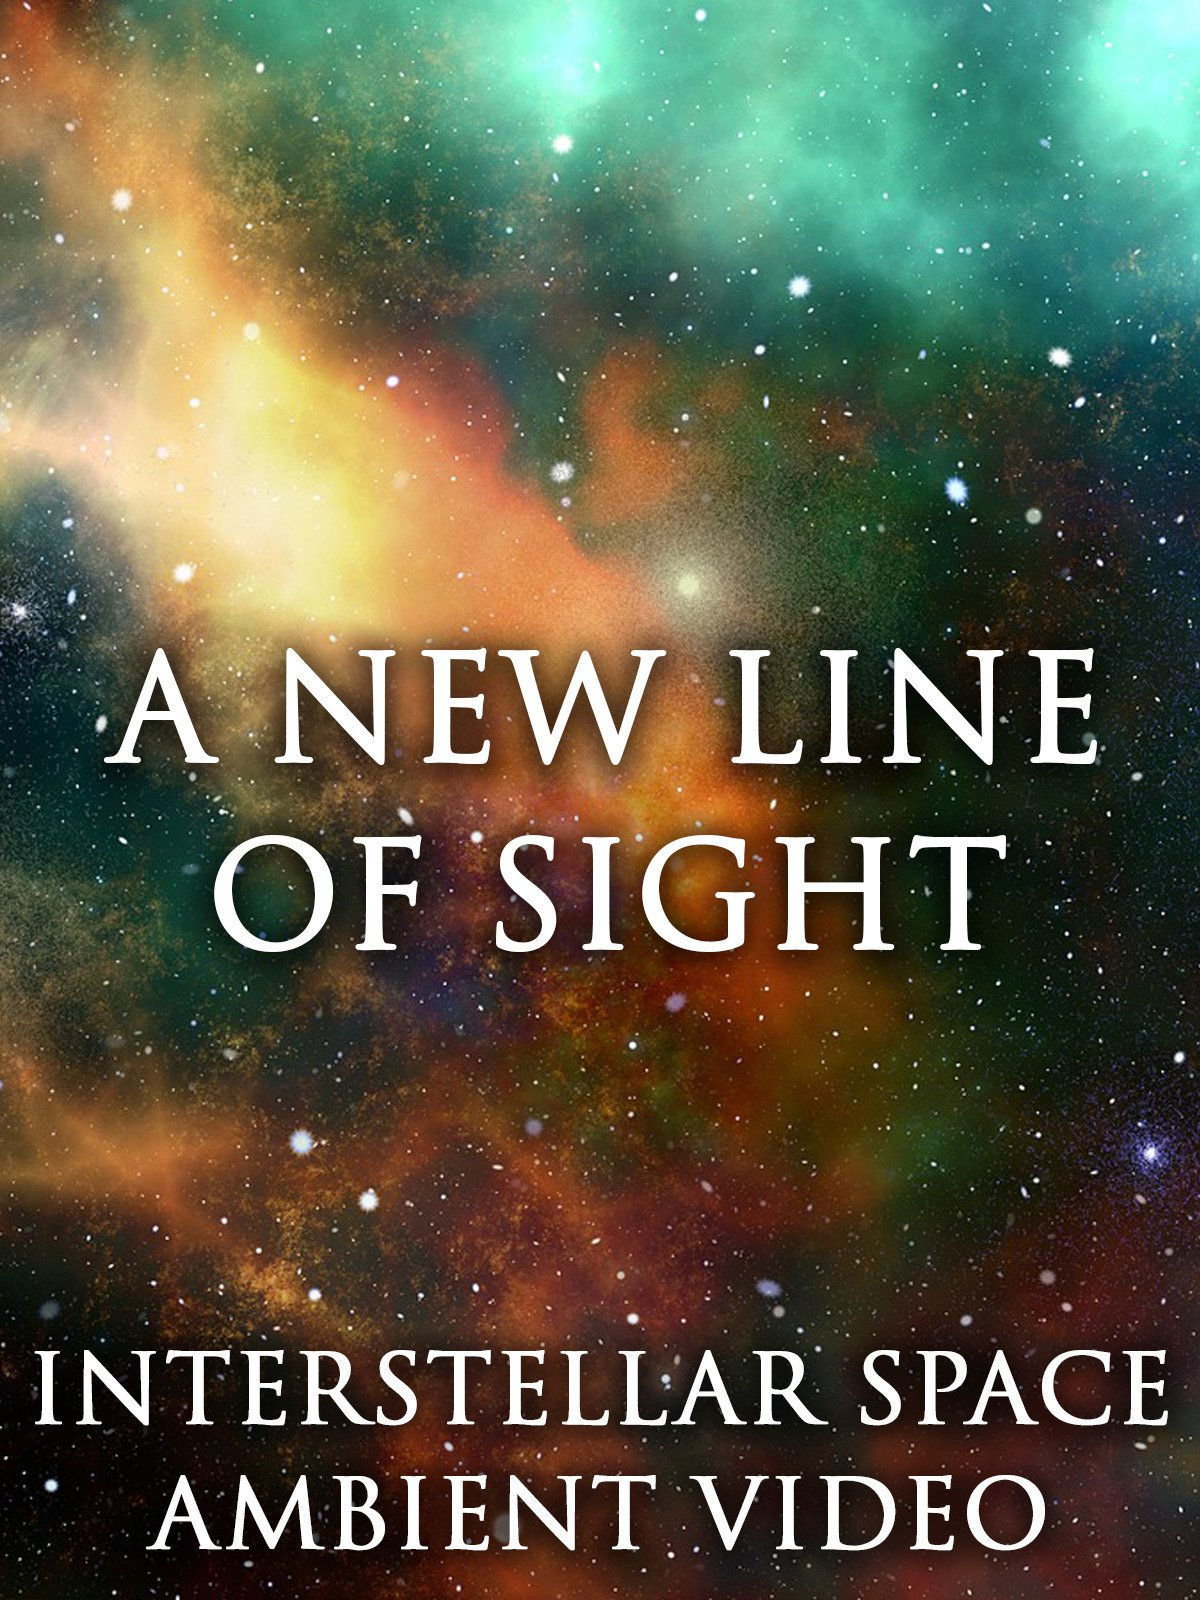 A New Line of Sight: Interstellar Space Ambient Video